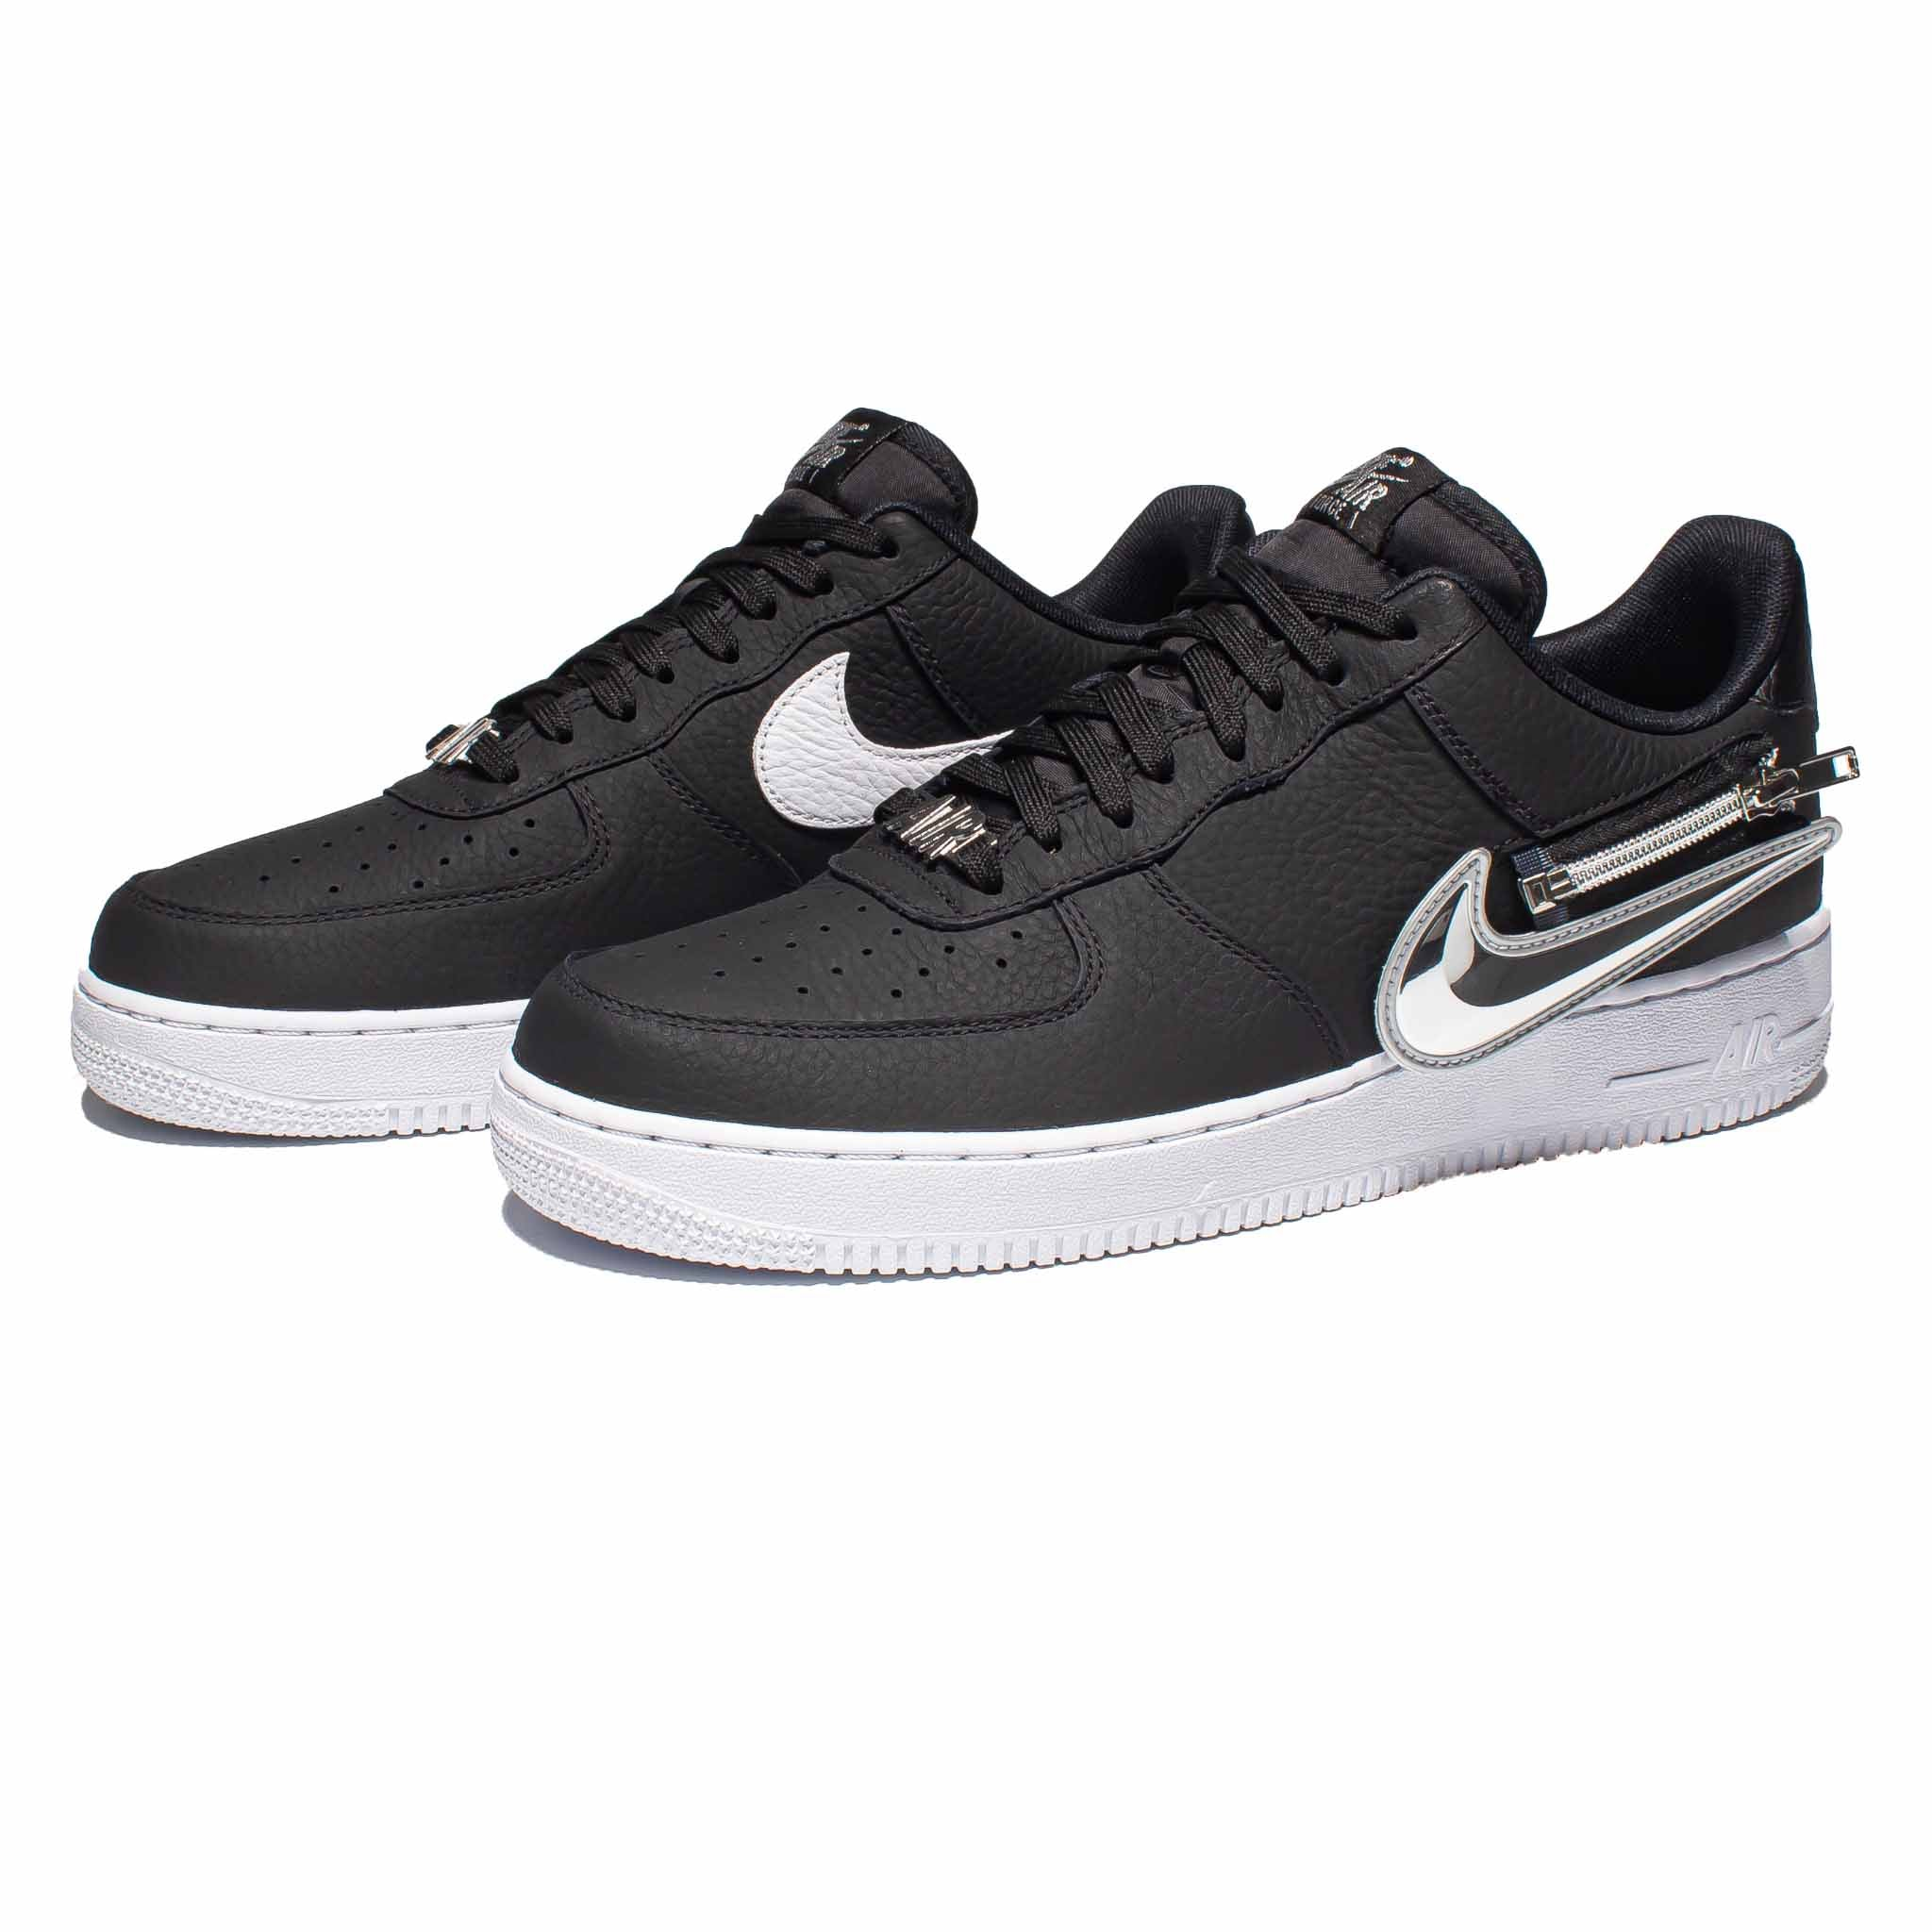 Nike Air Force 1 '07 PRM 'Zip Swoosh' Black